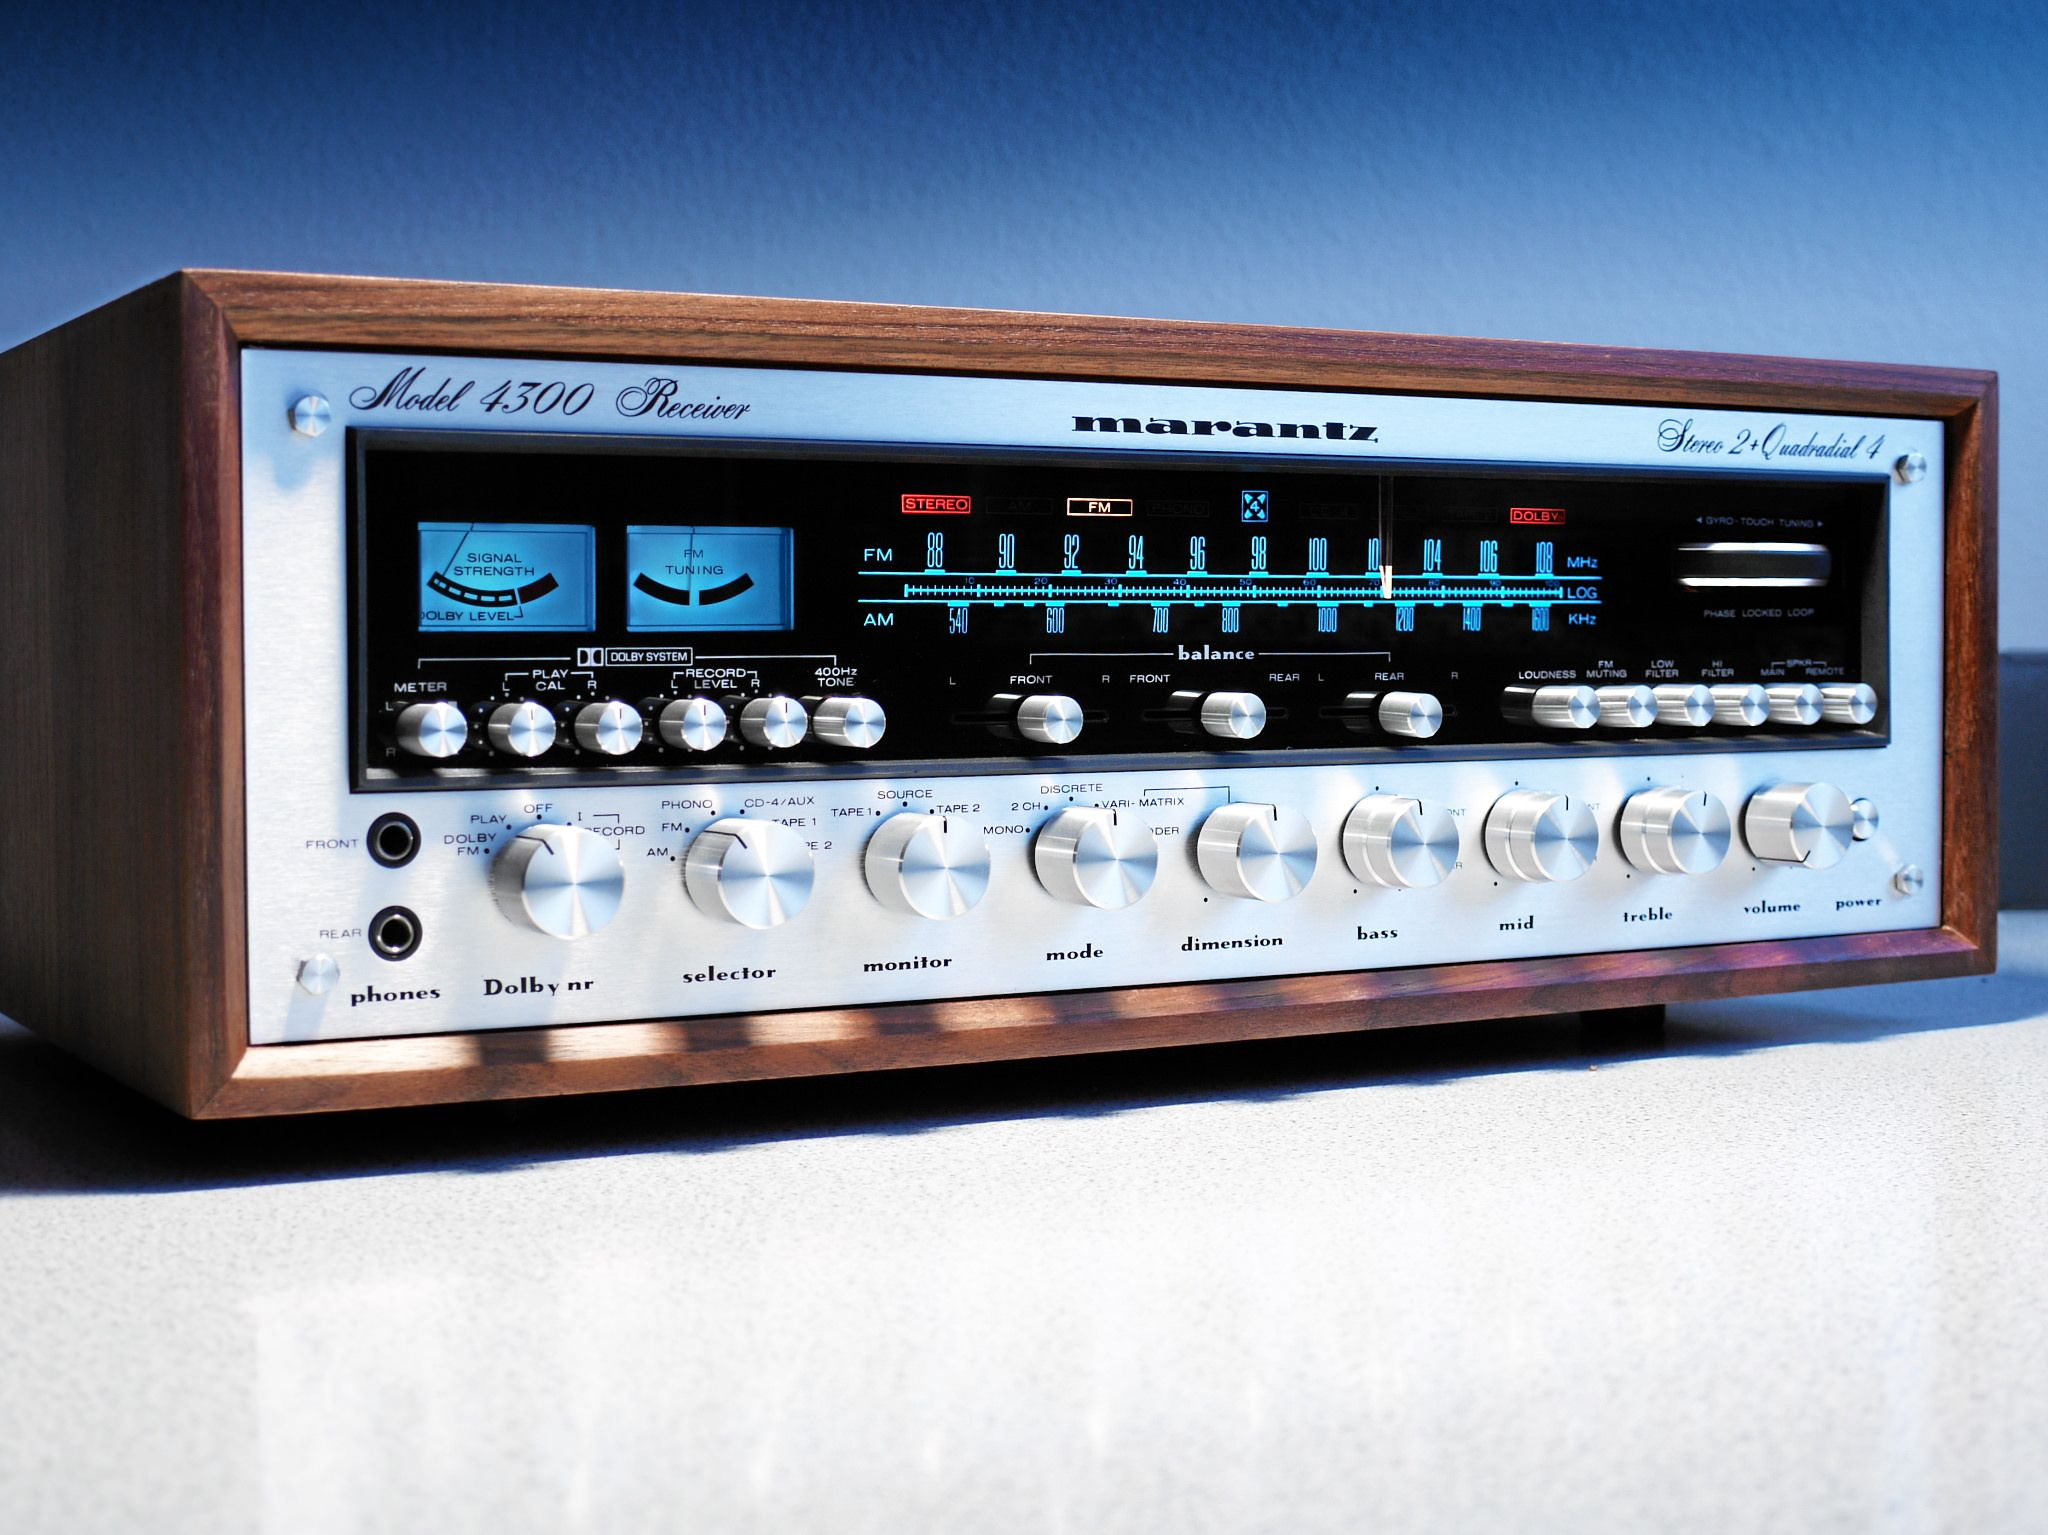 Marantz 4300 Quadrophonic Receiver #audiovideo